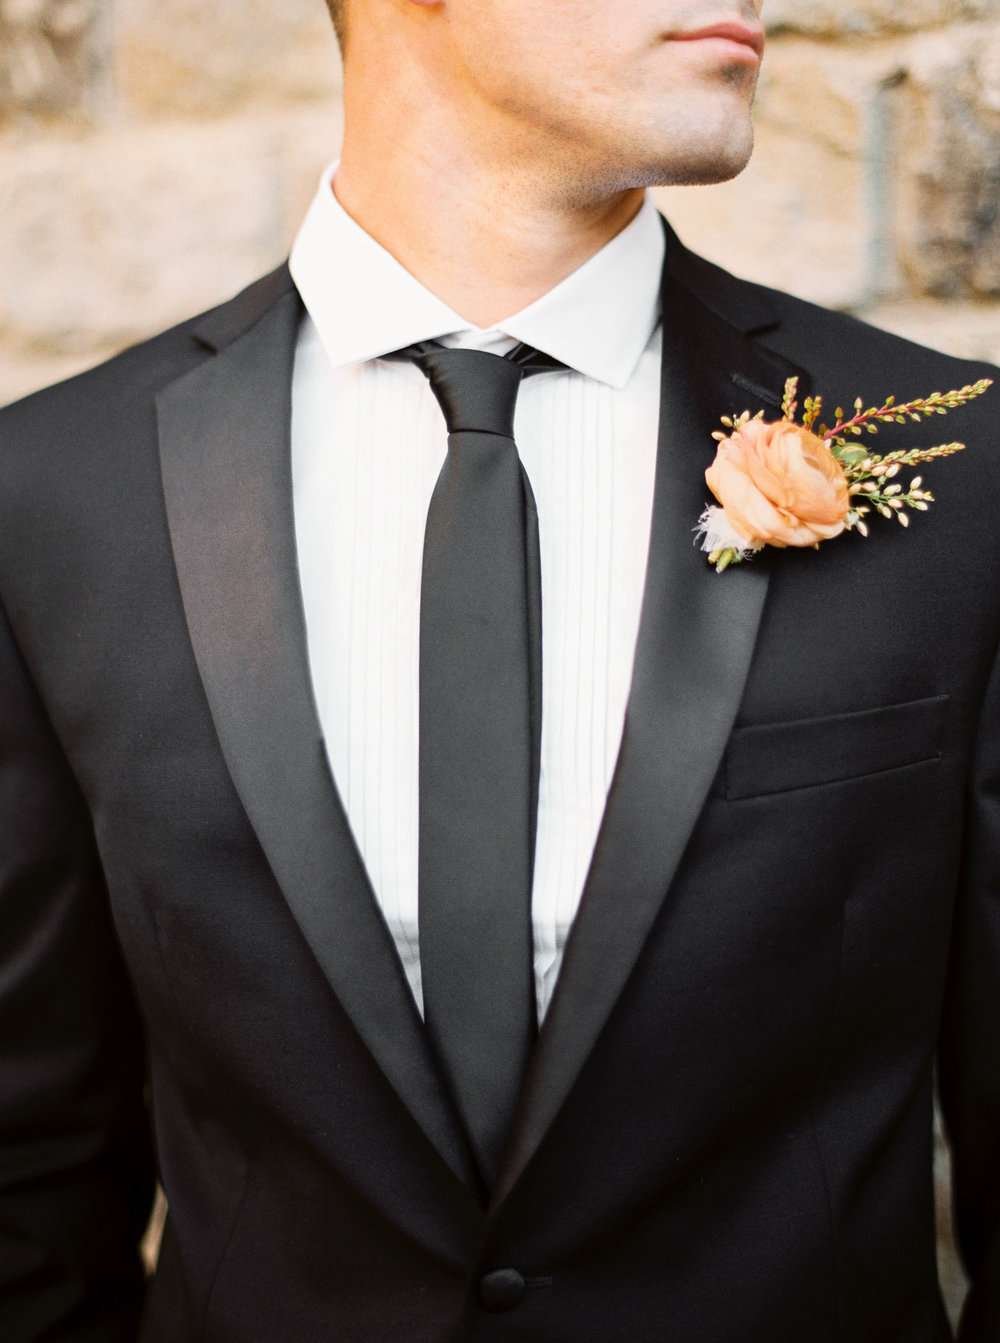 026napa_wedding_photographer_and_videographer_destination_and_elopement_photography.jpg